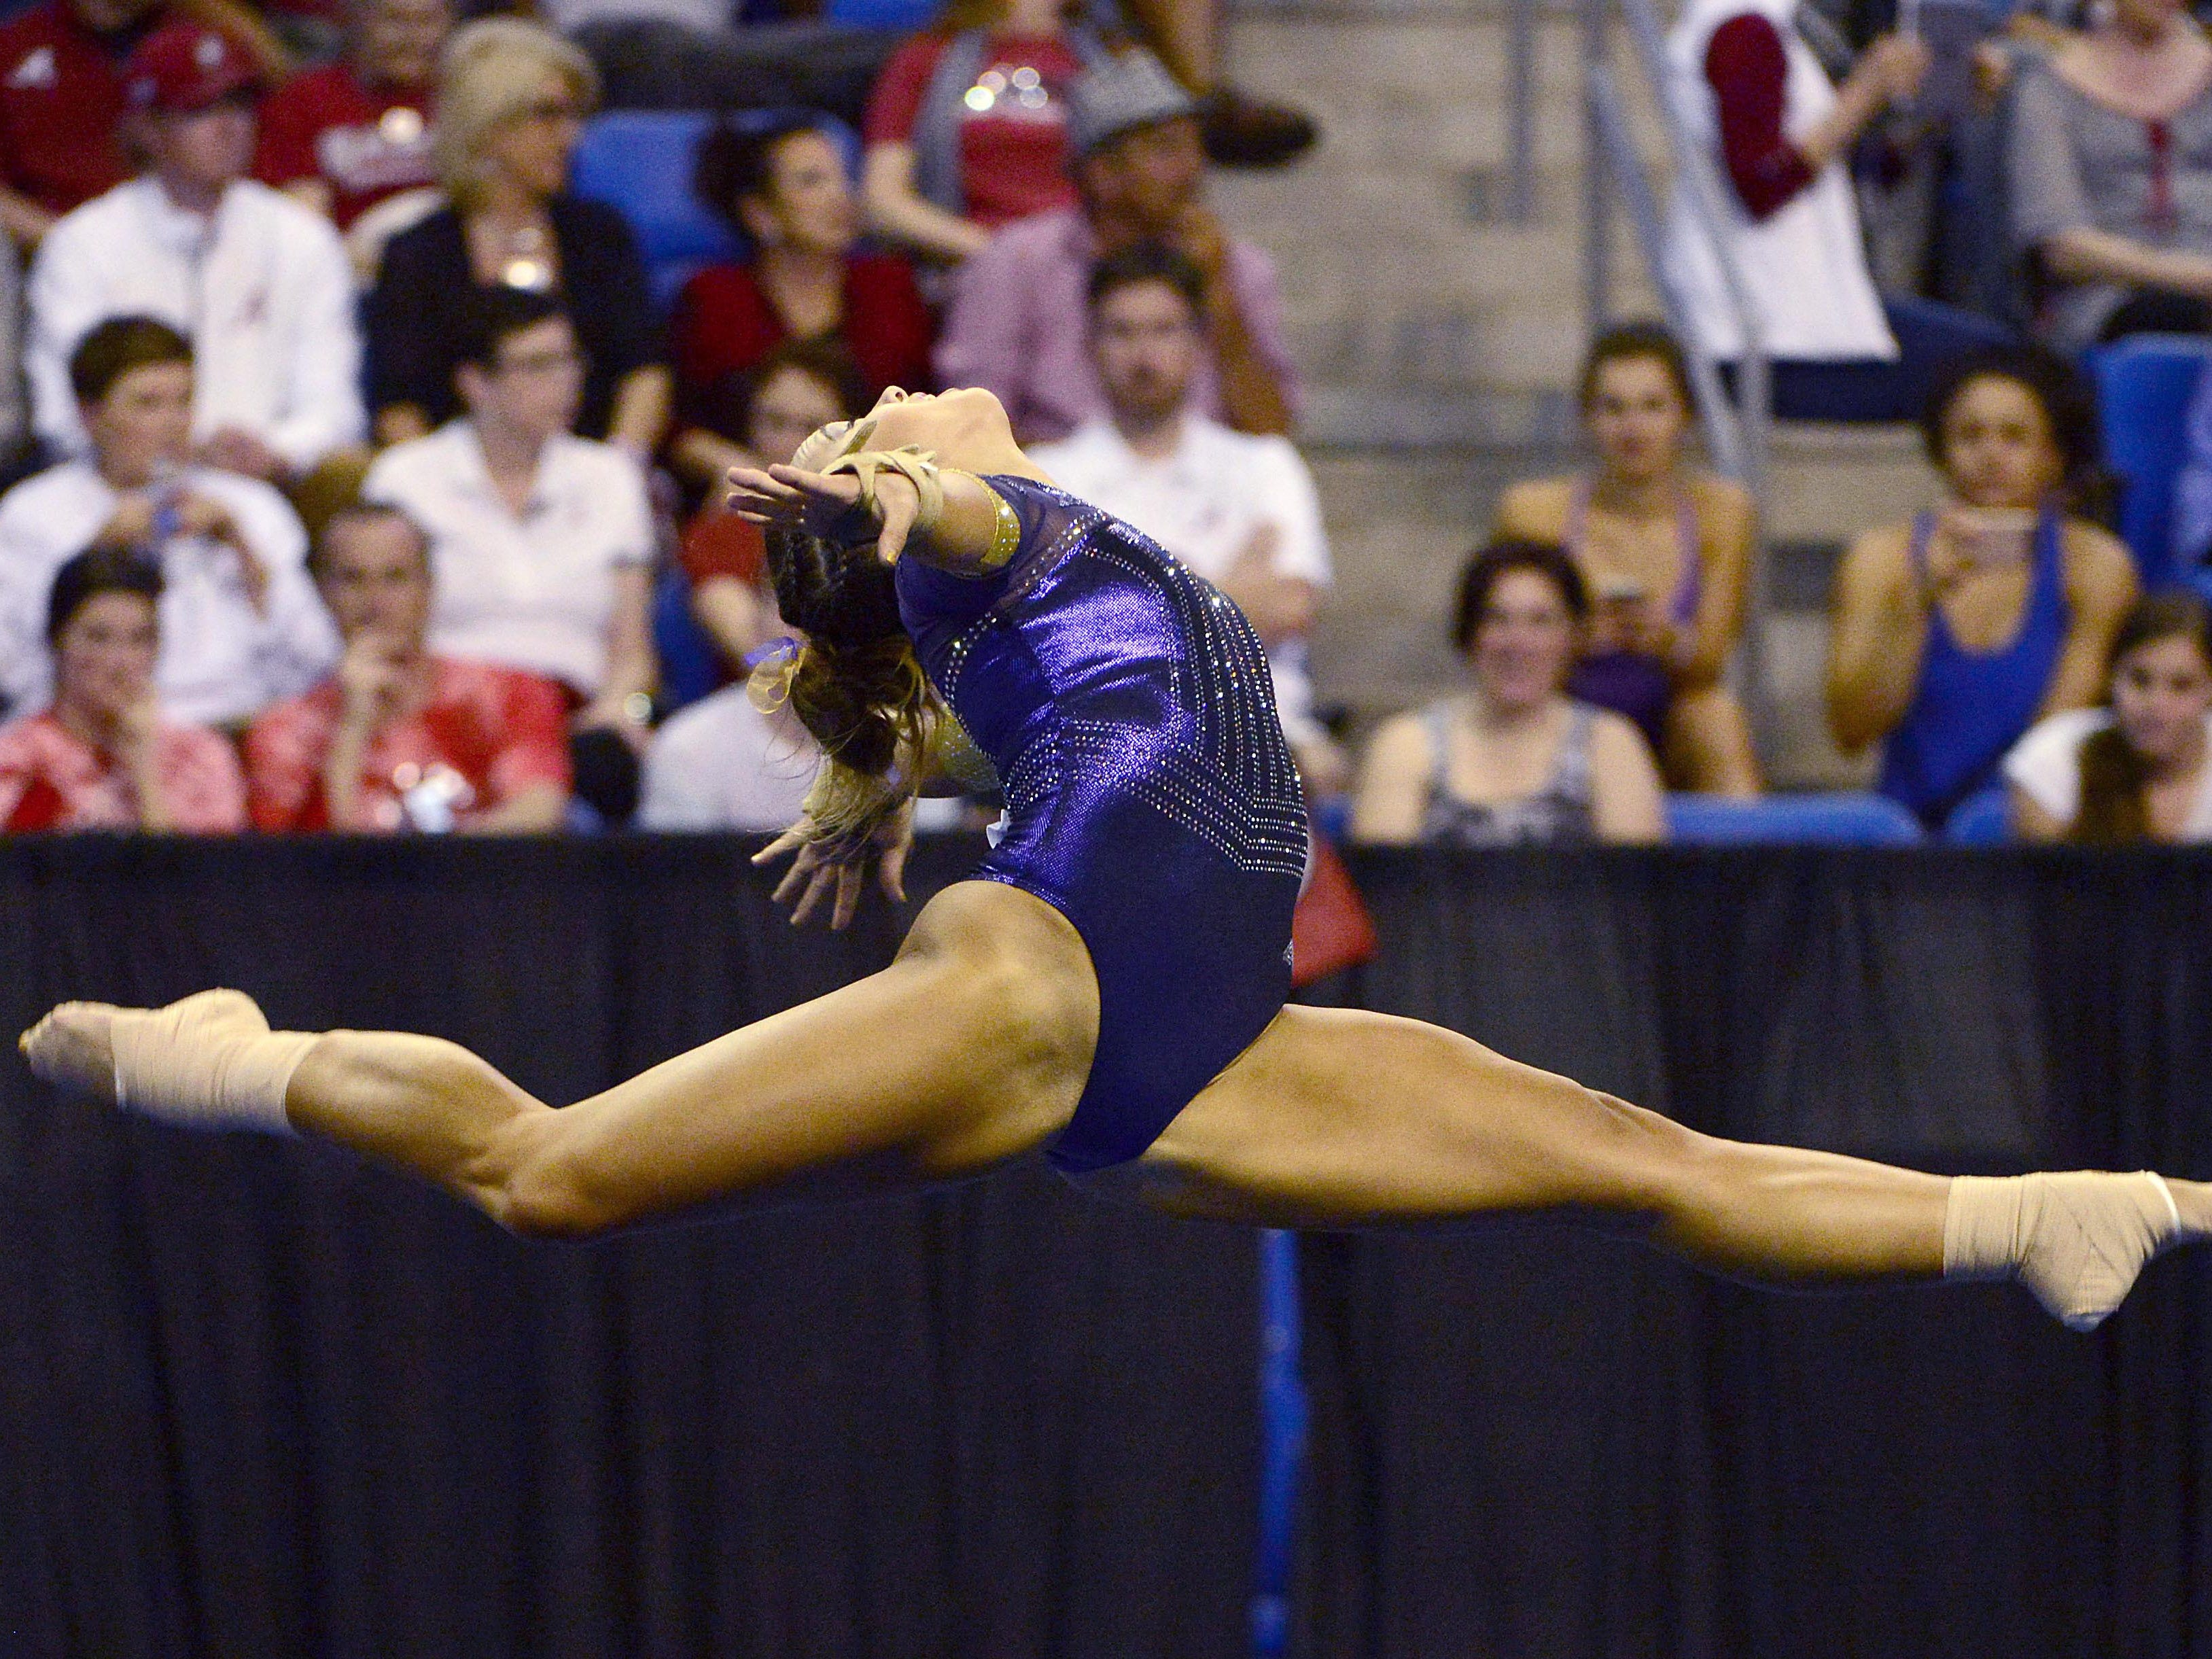 LSU Tigers gymnast Ashleigh Gnat performs a floor routine during the finals of the 2017 NCAA Women's Gymnastics Championships at Chaifetz Arena.